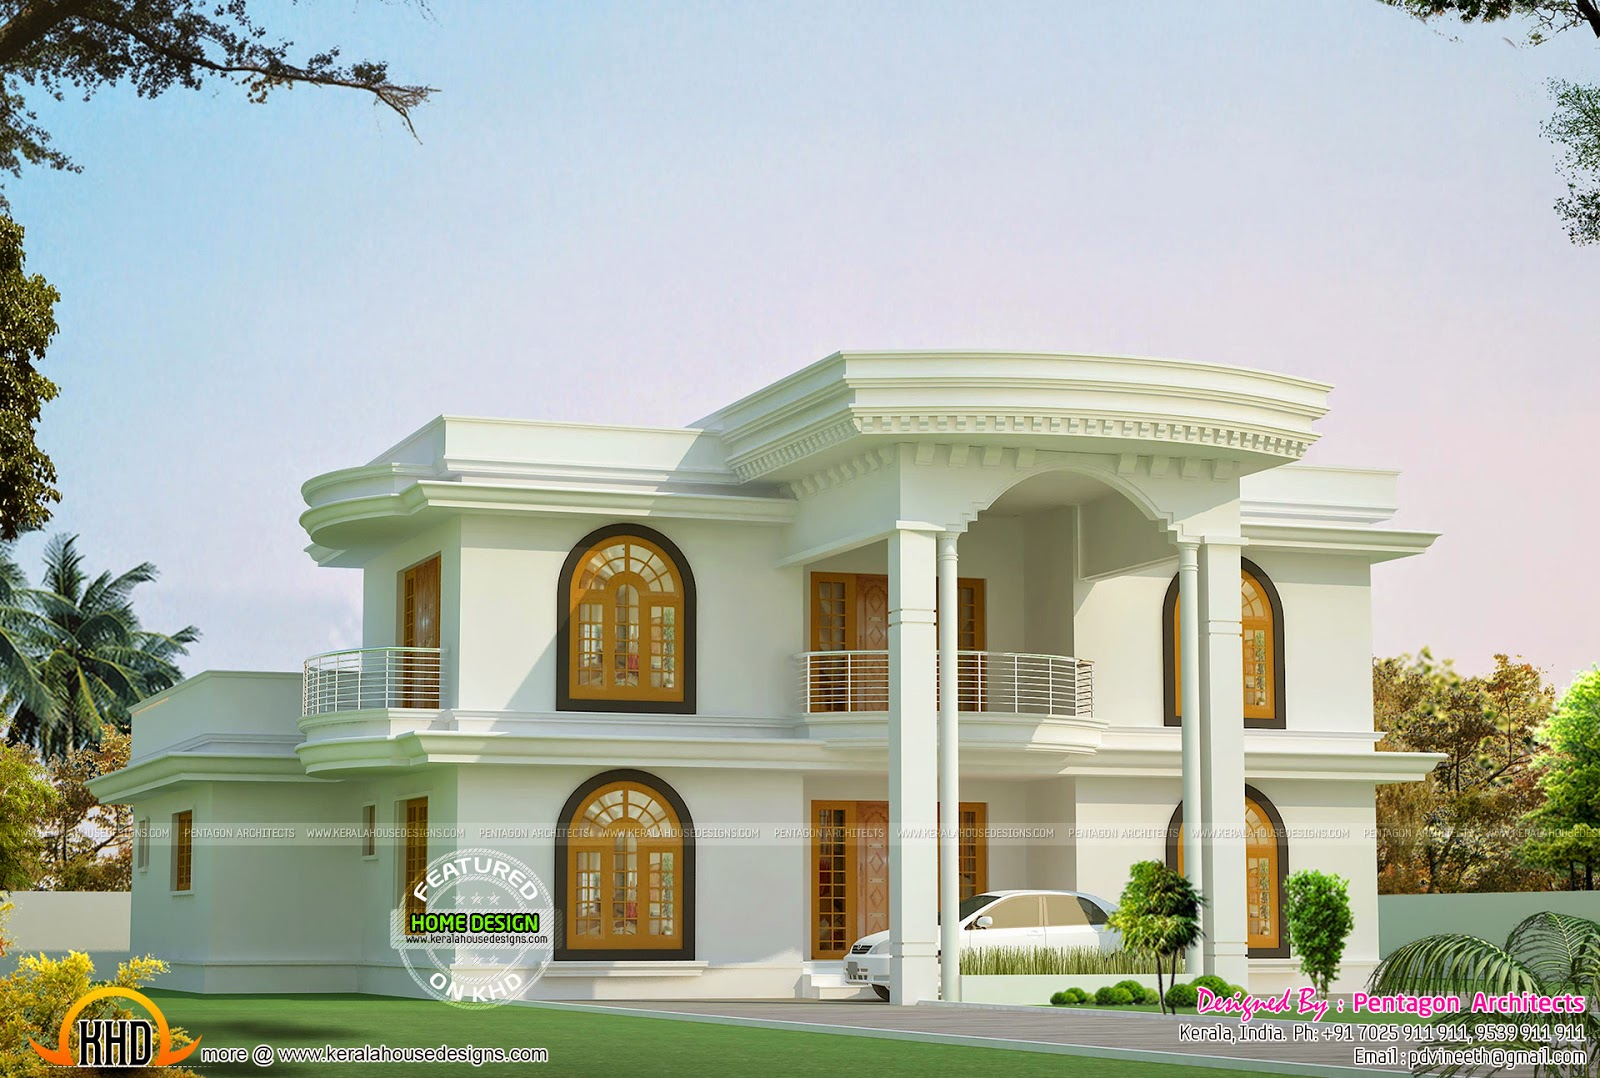 1188 square feet mixed roof house keralahousedesigns for Kerala house designs and floor plans 2016